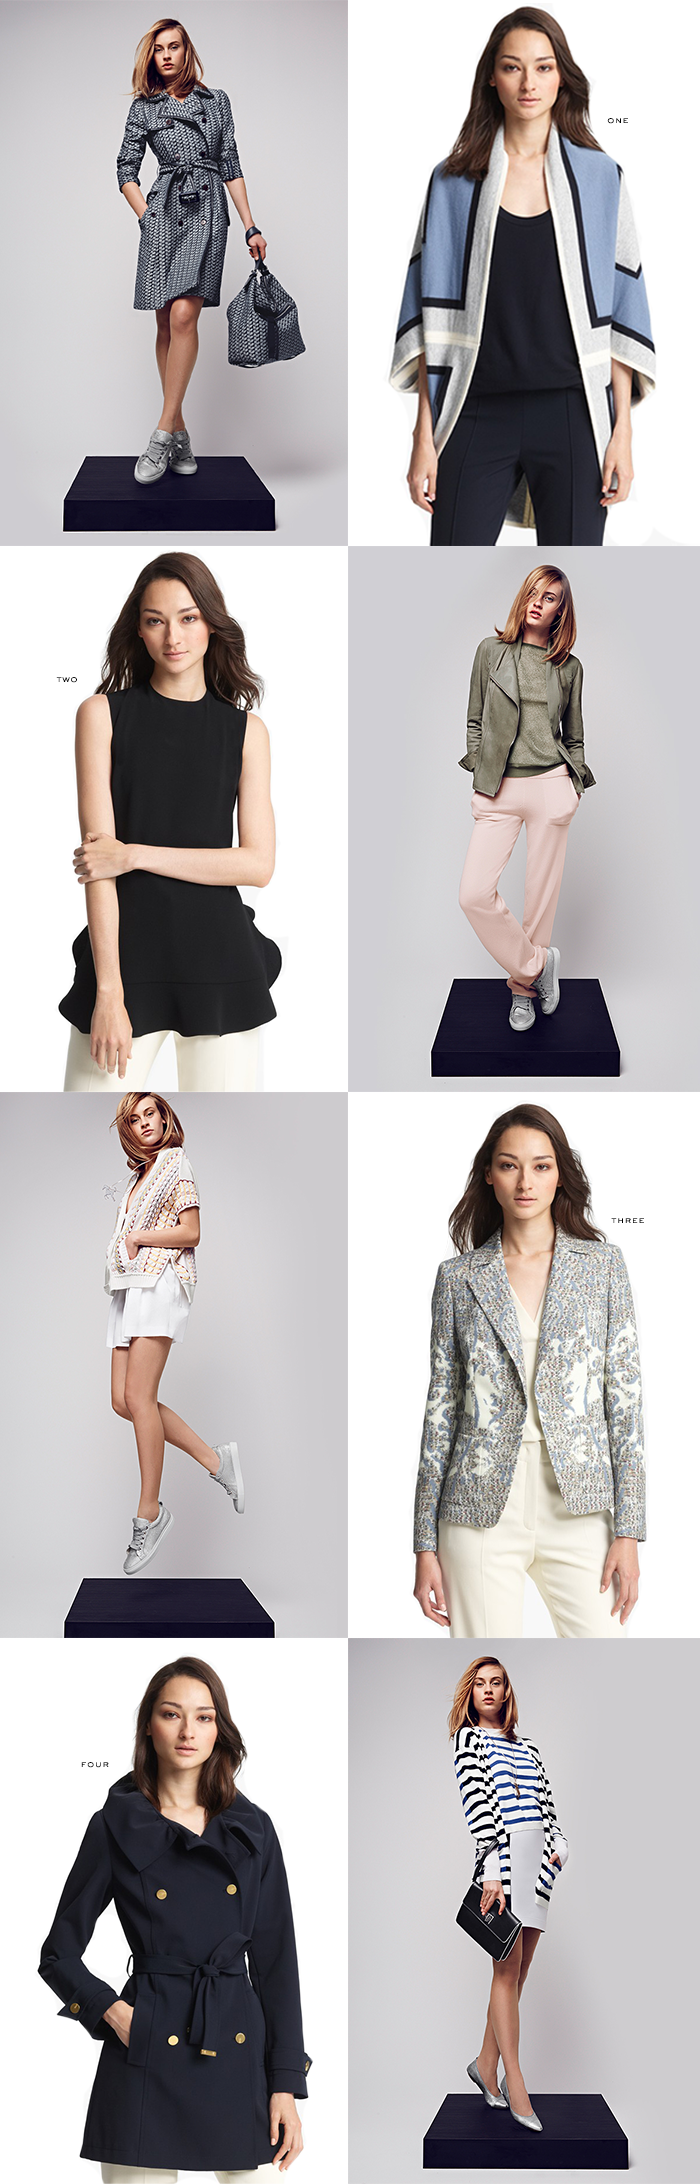 The Elegance of Escada | The Style Scribe